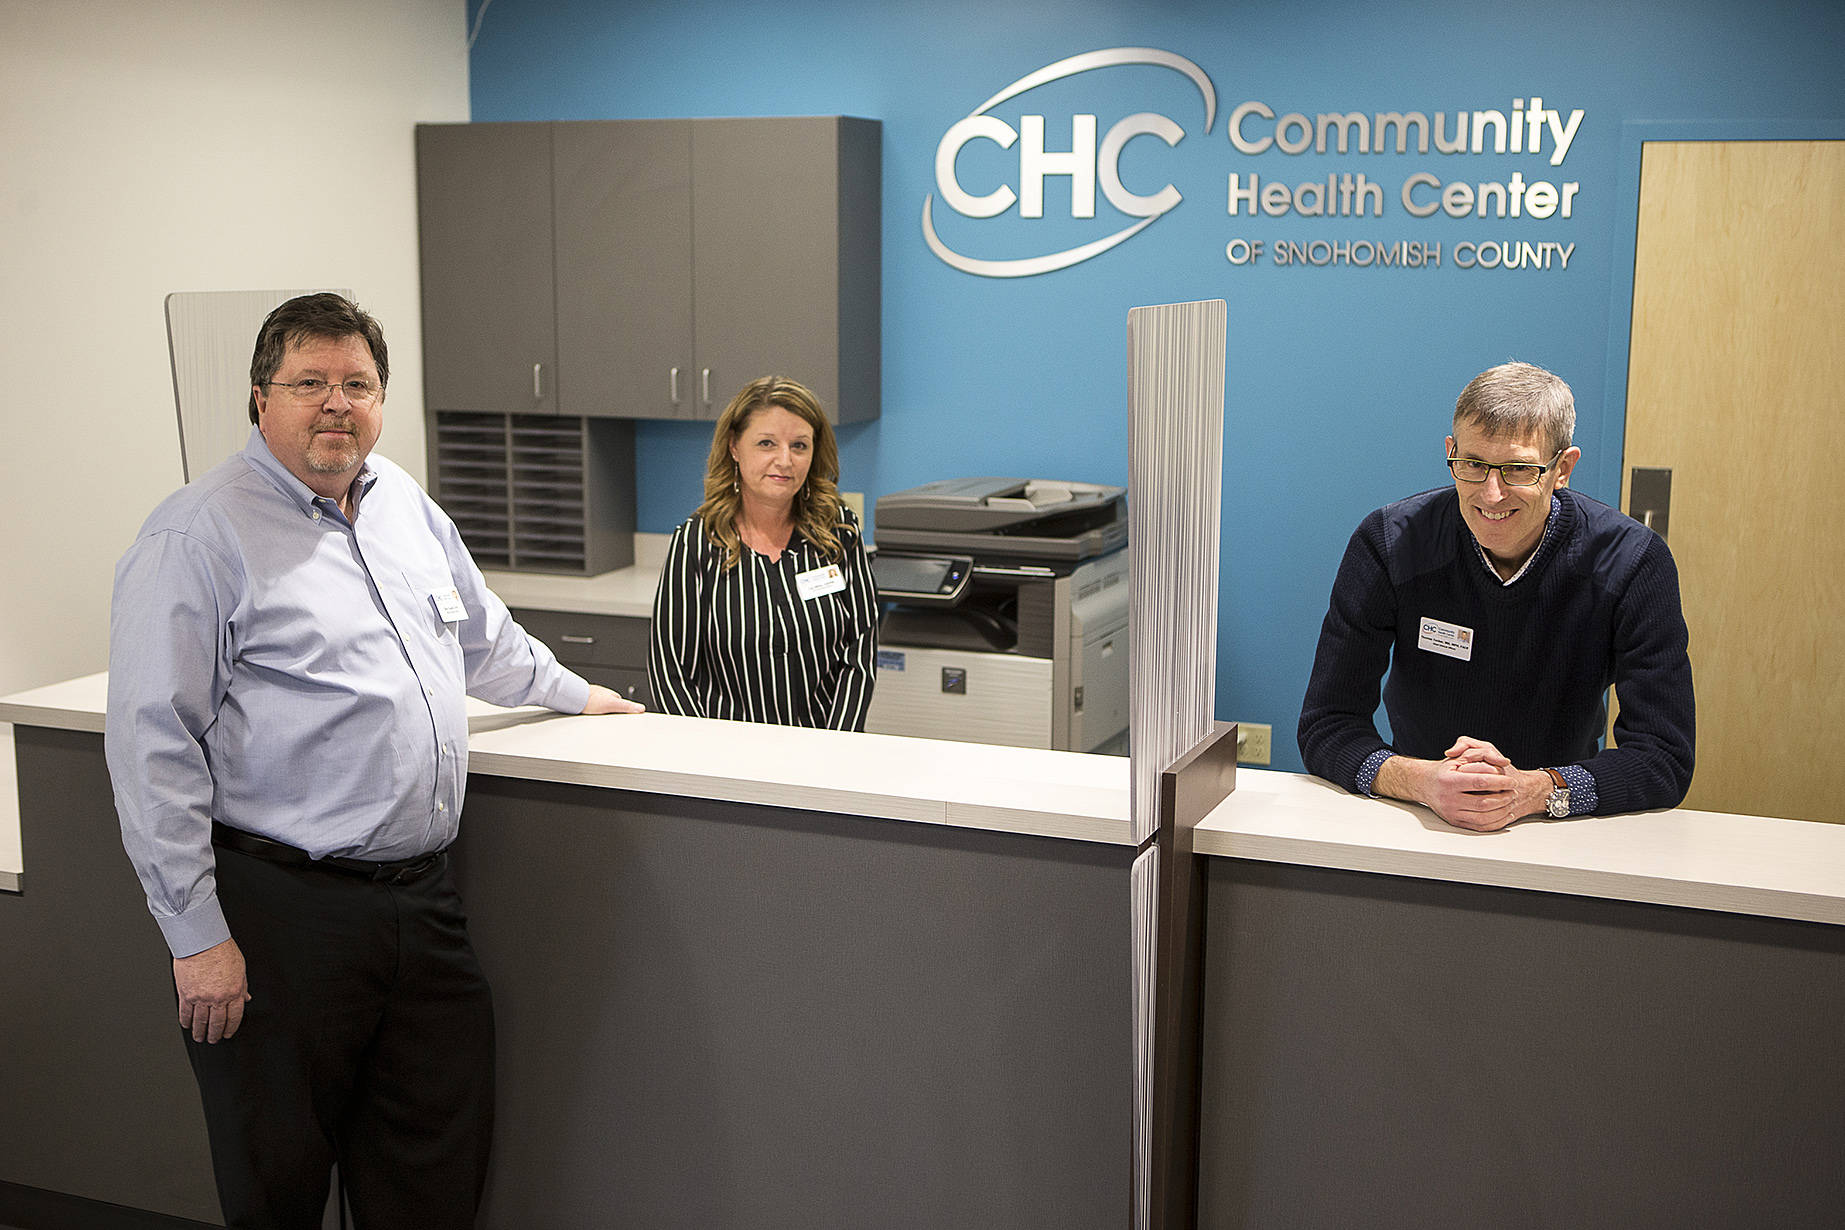 Health Center of Snohomish County Chief Executive Officer Bob Farrell (from left), Chief Operating Officer Lisa Miller and Chief Clinical Officer Dr. Thomas Tocher stand in the newest clinic location on Rucker Avenue in Everett.Ian Terry / The Herald Community